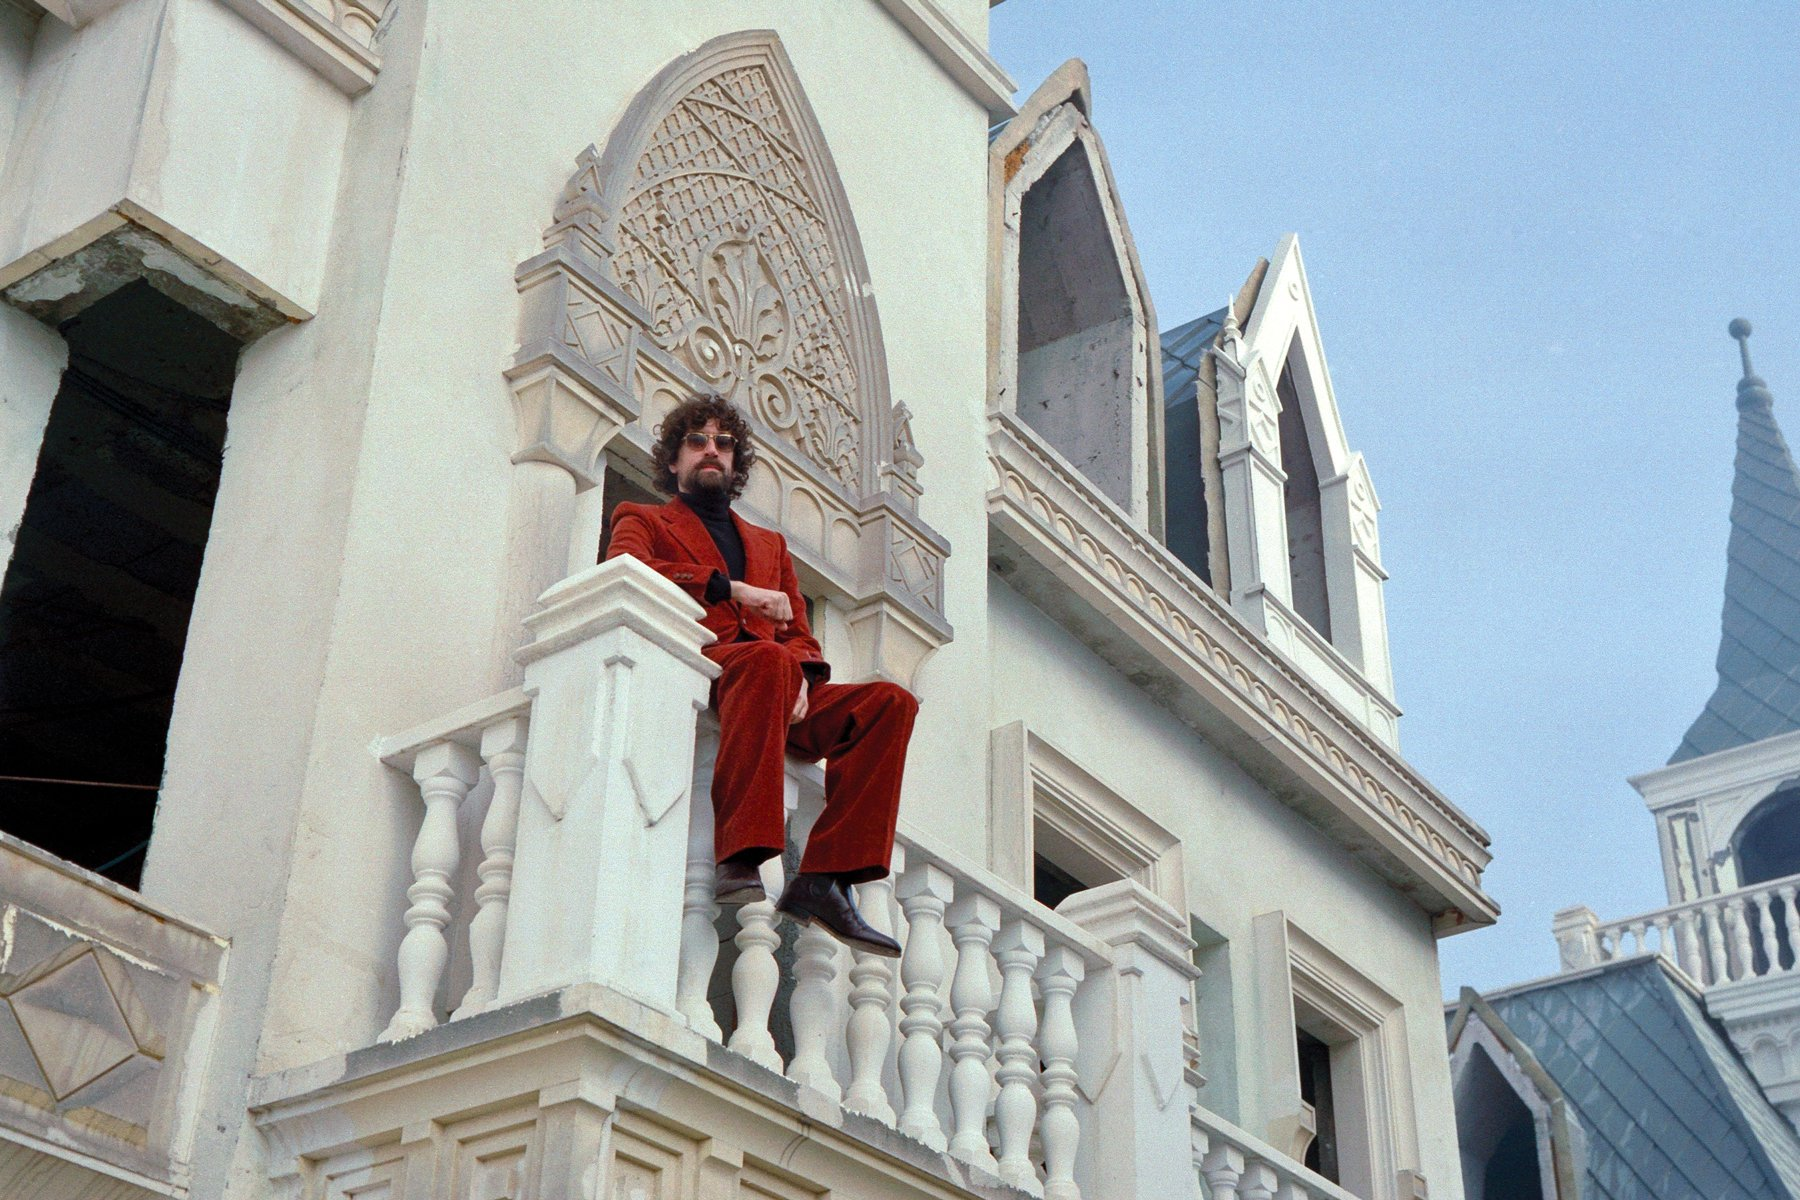 Justice's Gaspard Augé Releases Debut Solo Single 'Force Majeure'